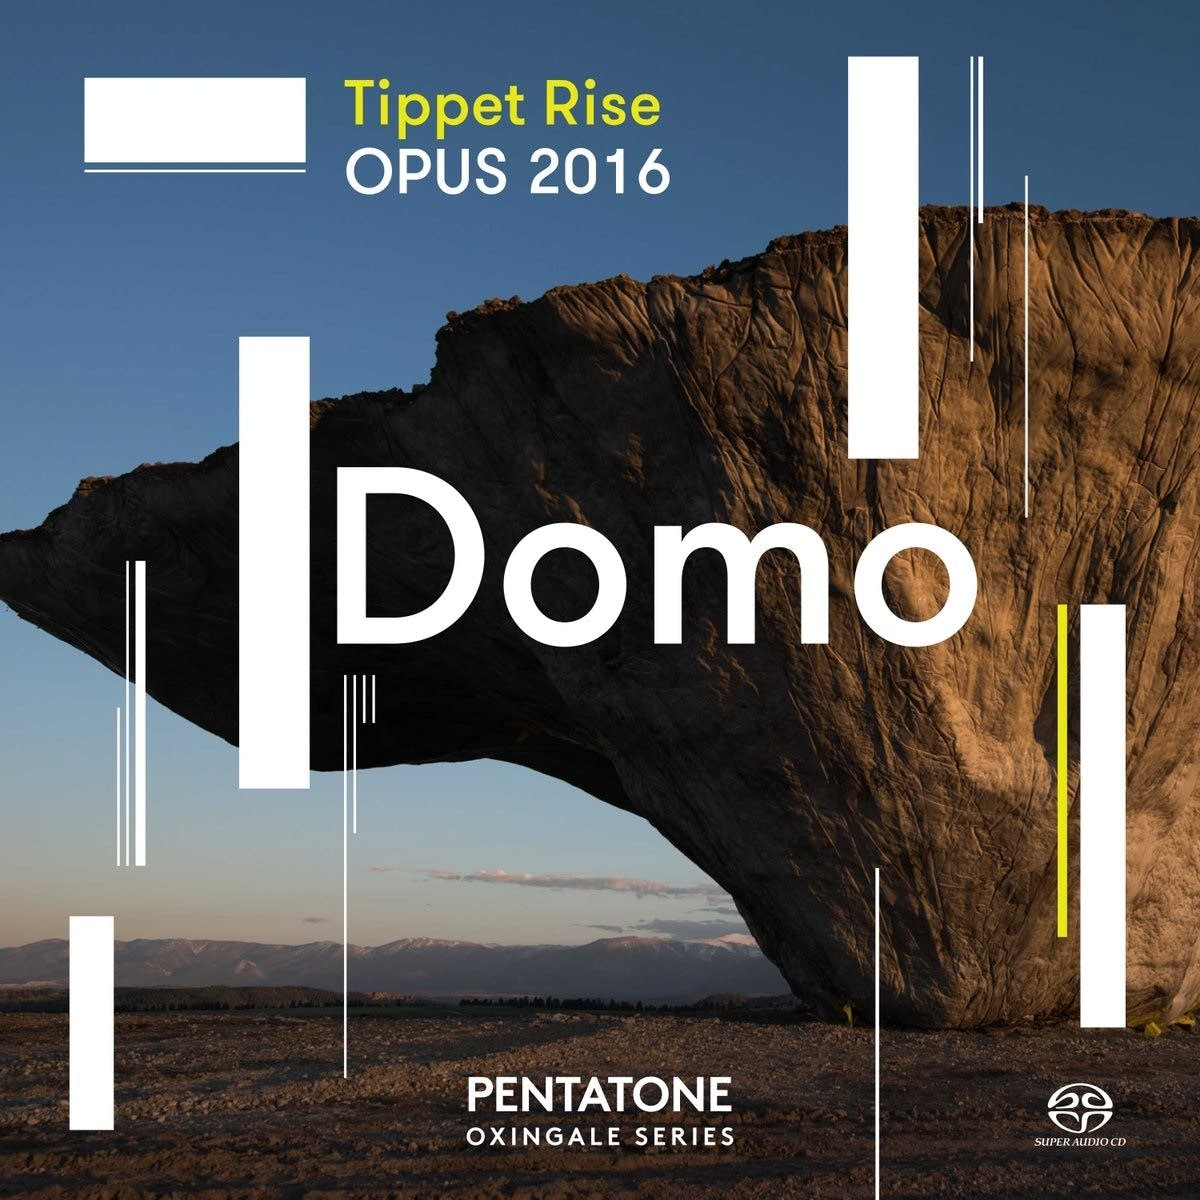 Tippet Rise: Opus 2016 - Domo